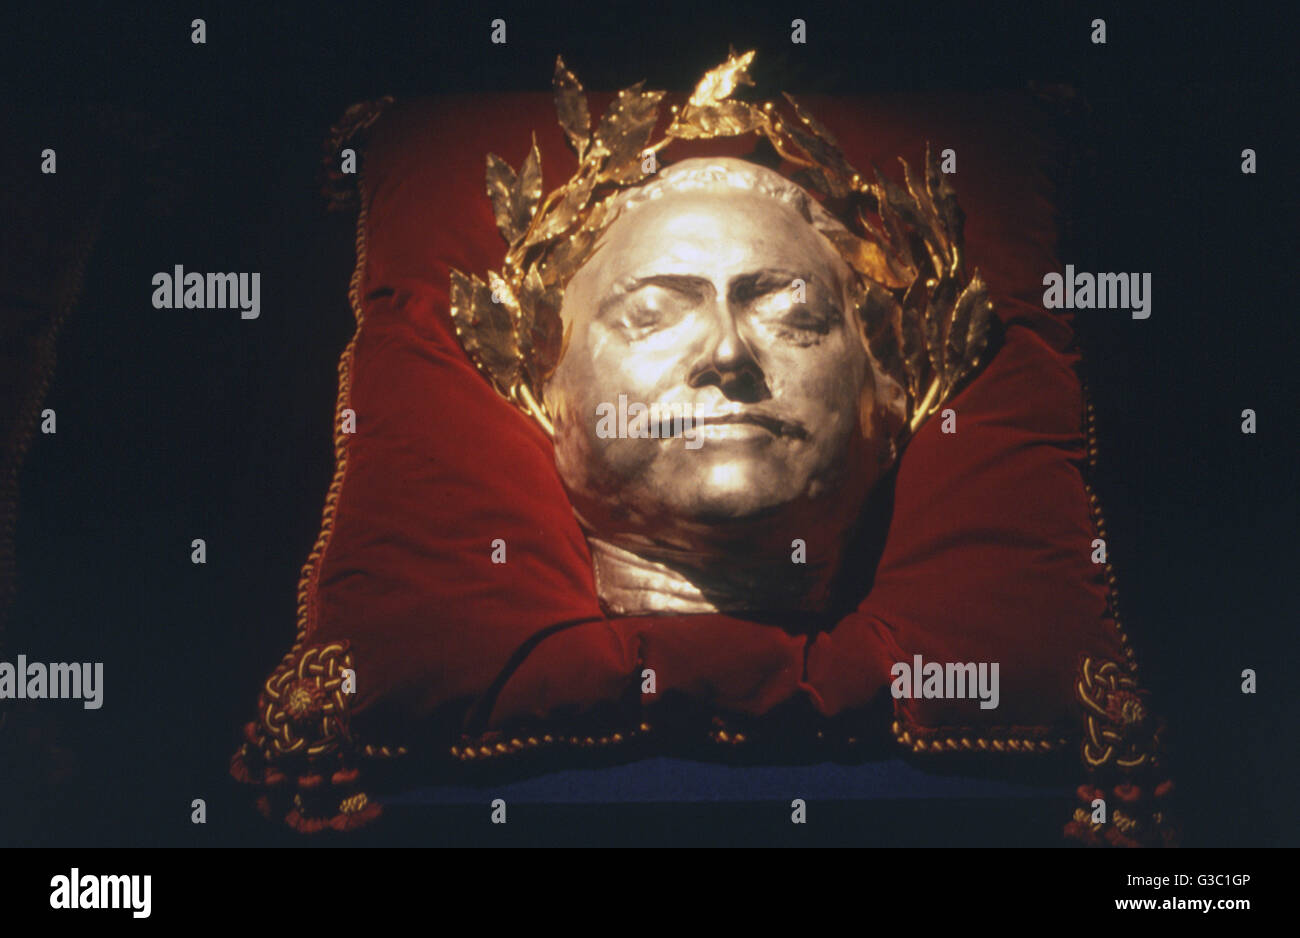 Peter the Great, Tsar of Russia, death mask in gold and silver.      Date: circa 1990s - Stock Image